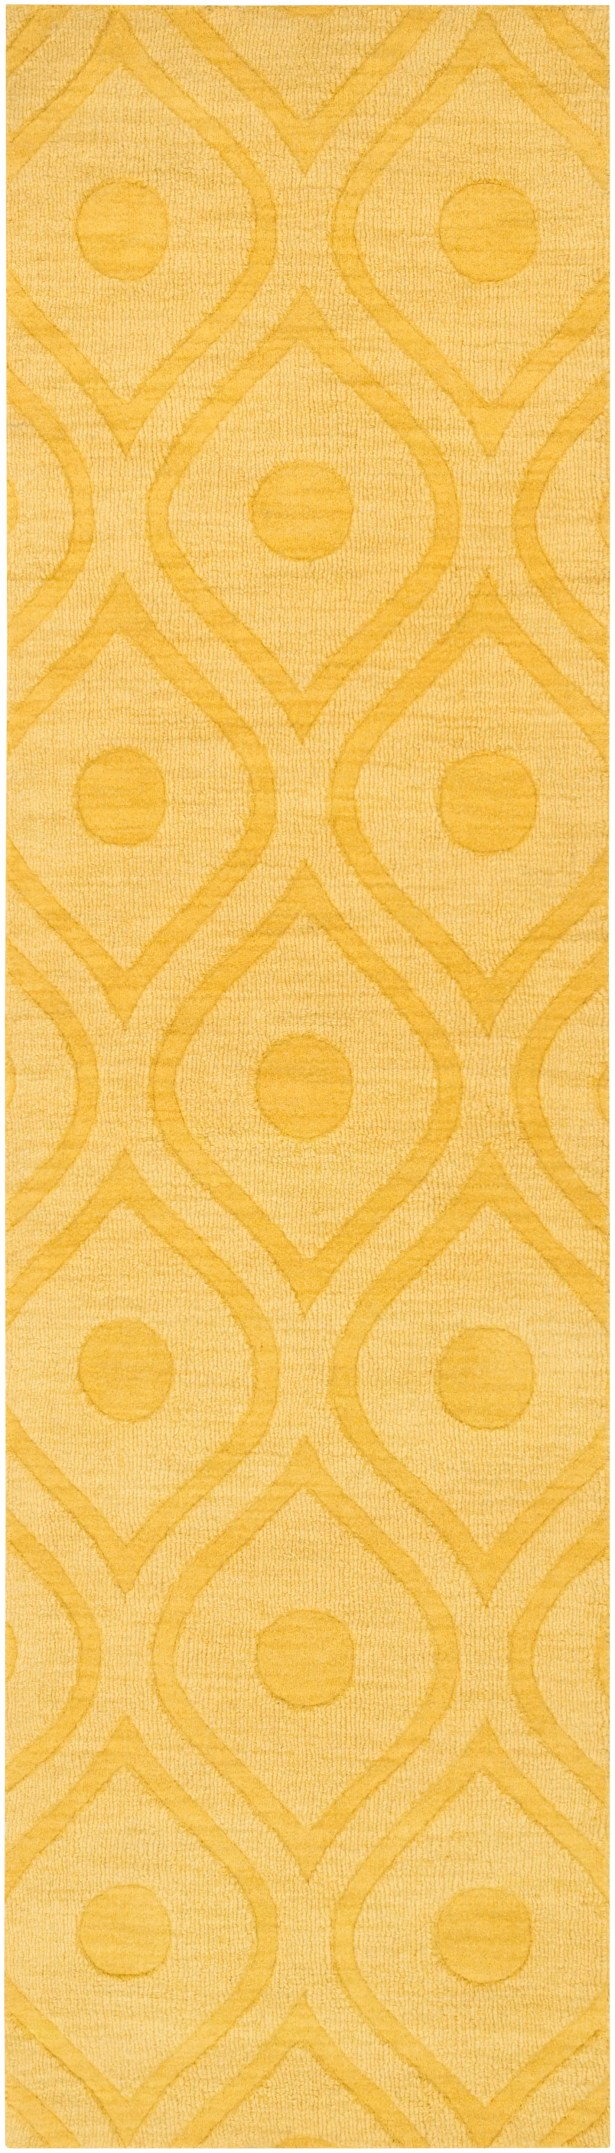 Castro Hand Woven Wool Yellow Area Rug Rug Size: Runner 2'3